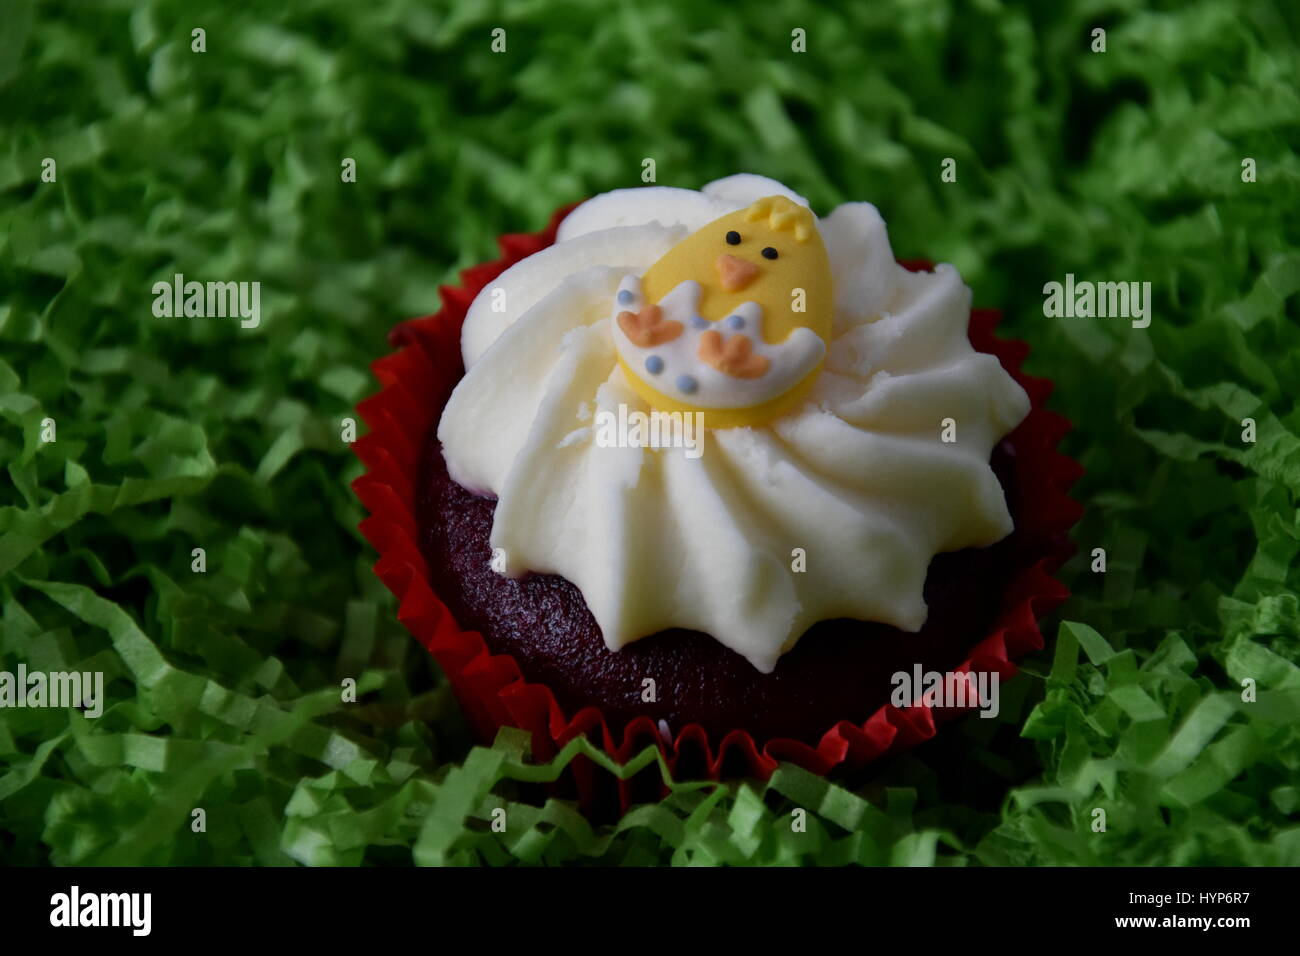 Home Made Easter Muffin Decorated With Egg Concept Yellow Chicken On Top Of The Red And White Cupcake In Green Nest